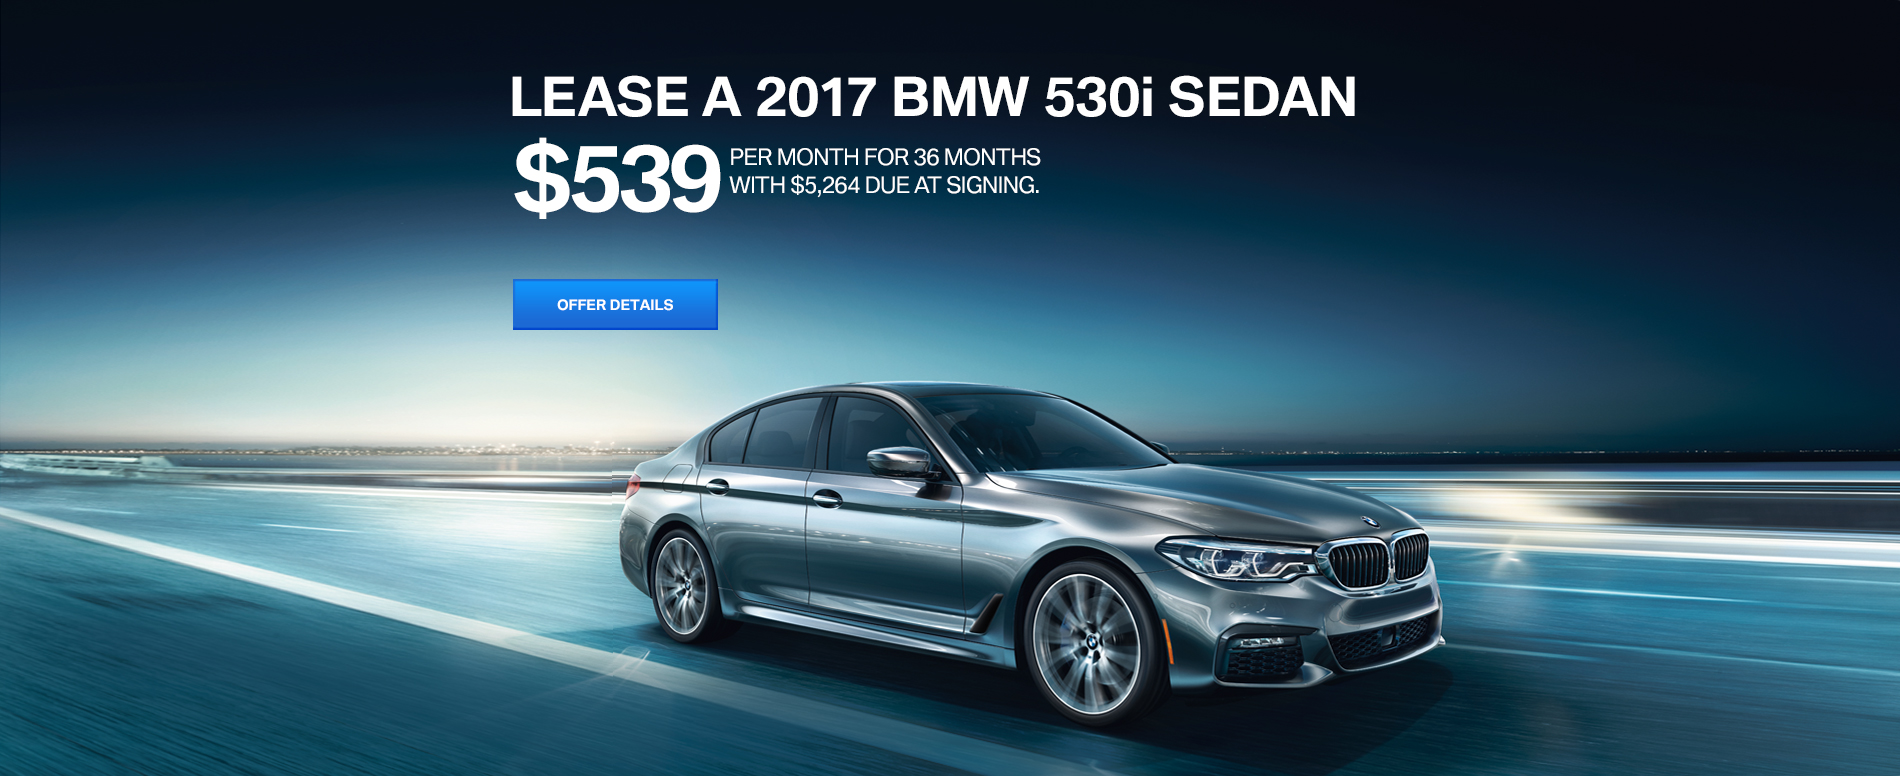 LEASE A 2017 530i SEDAN FOR $539/MO FOR 36 MONTHS; WITH $5,264 D